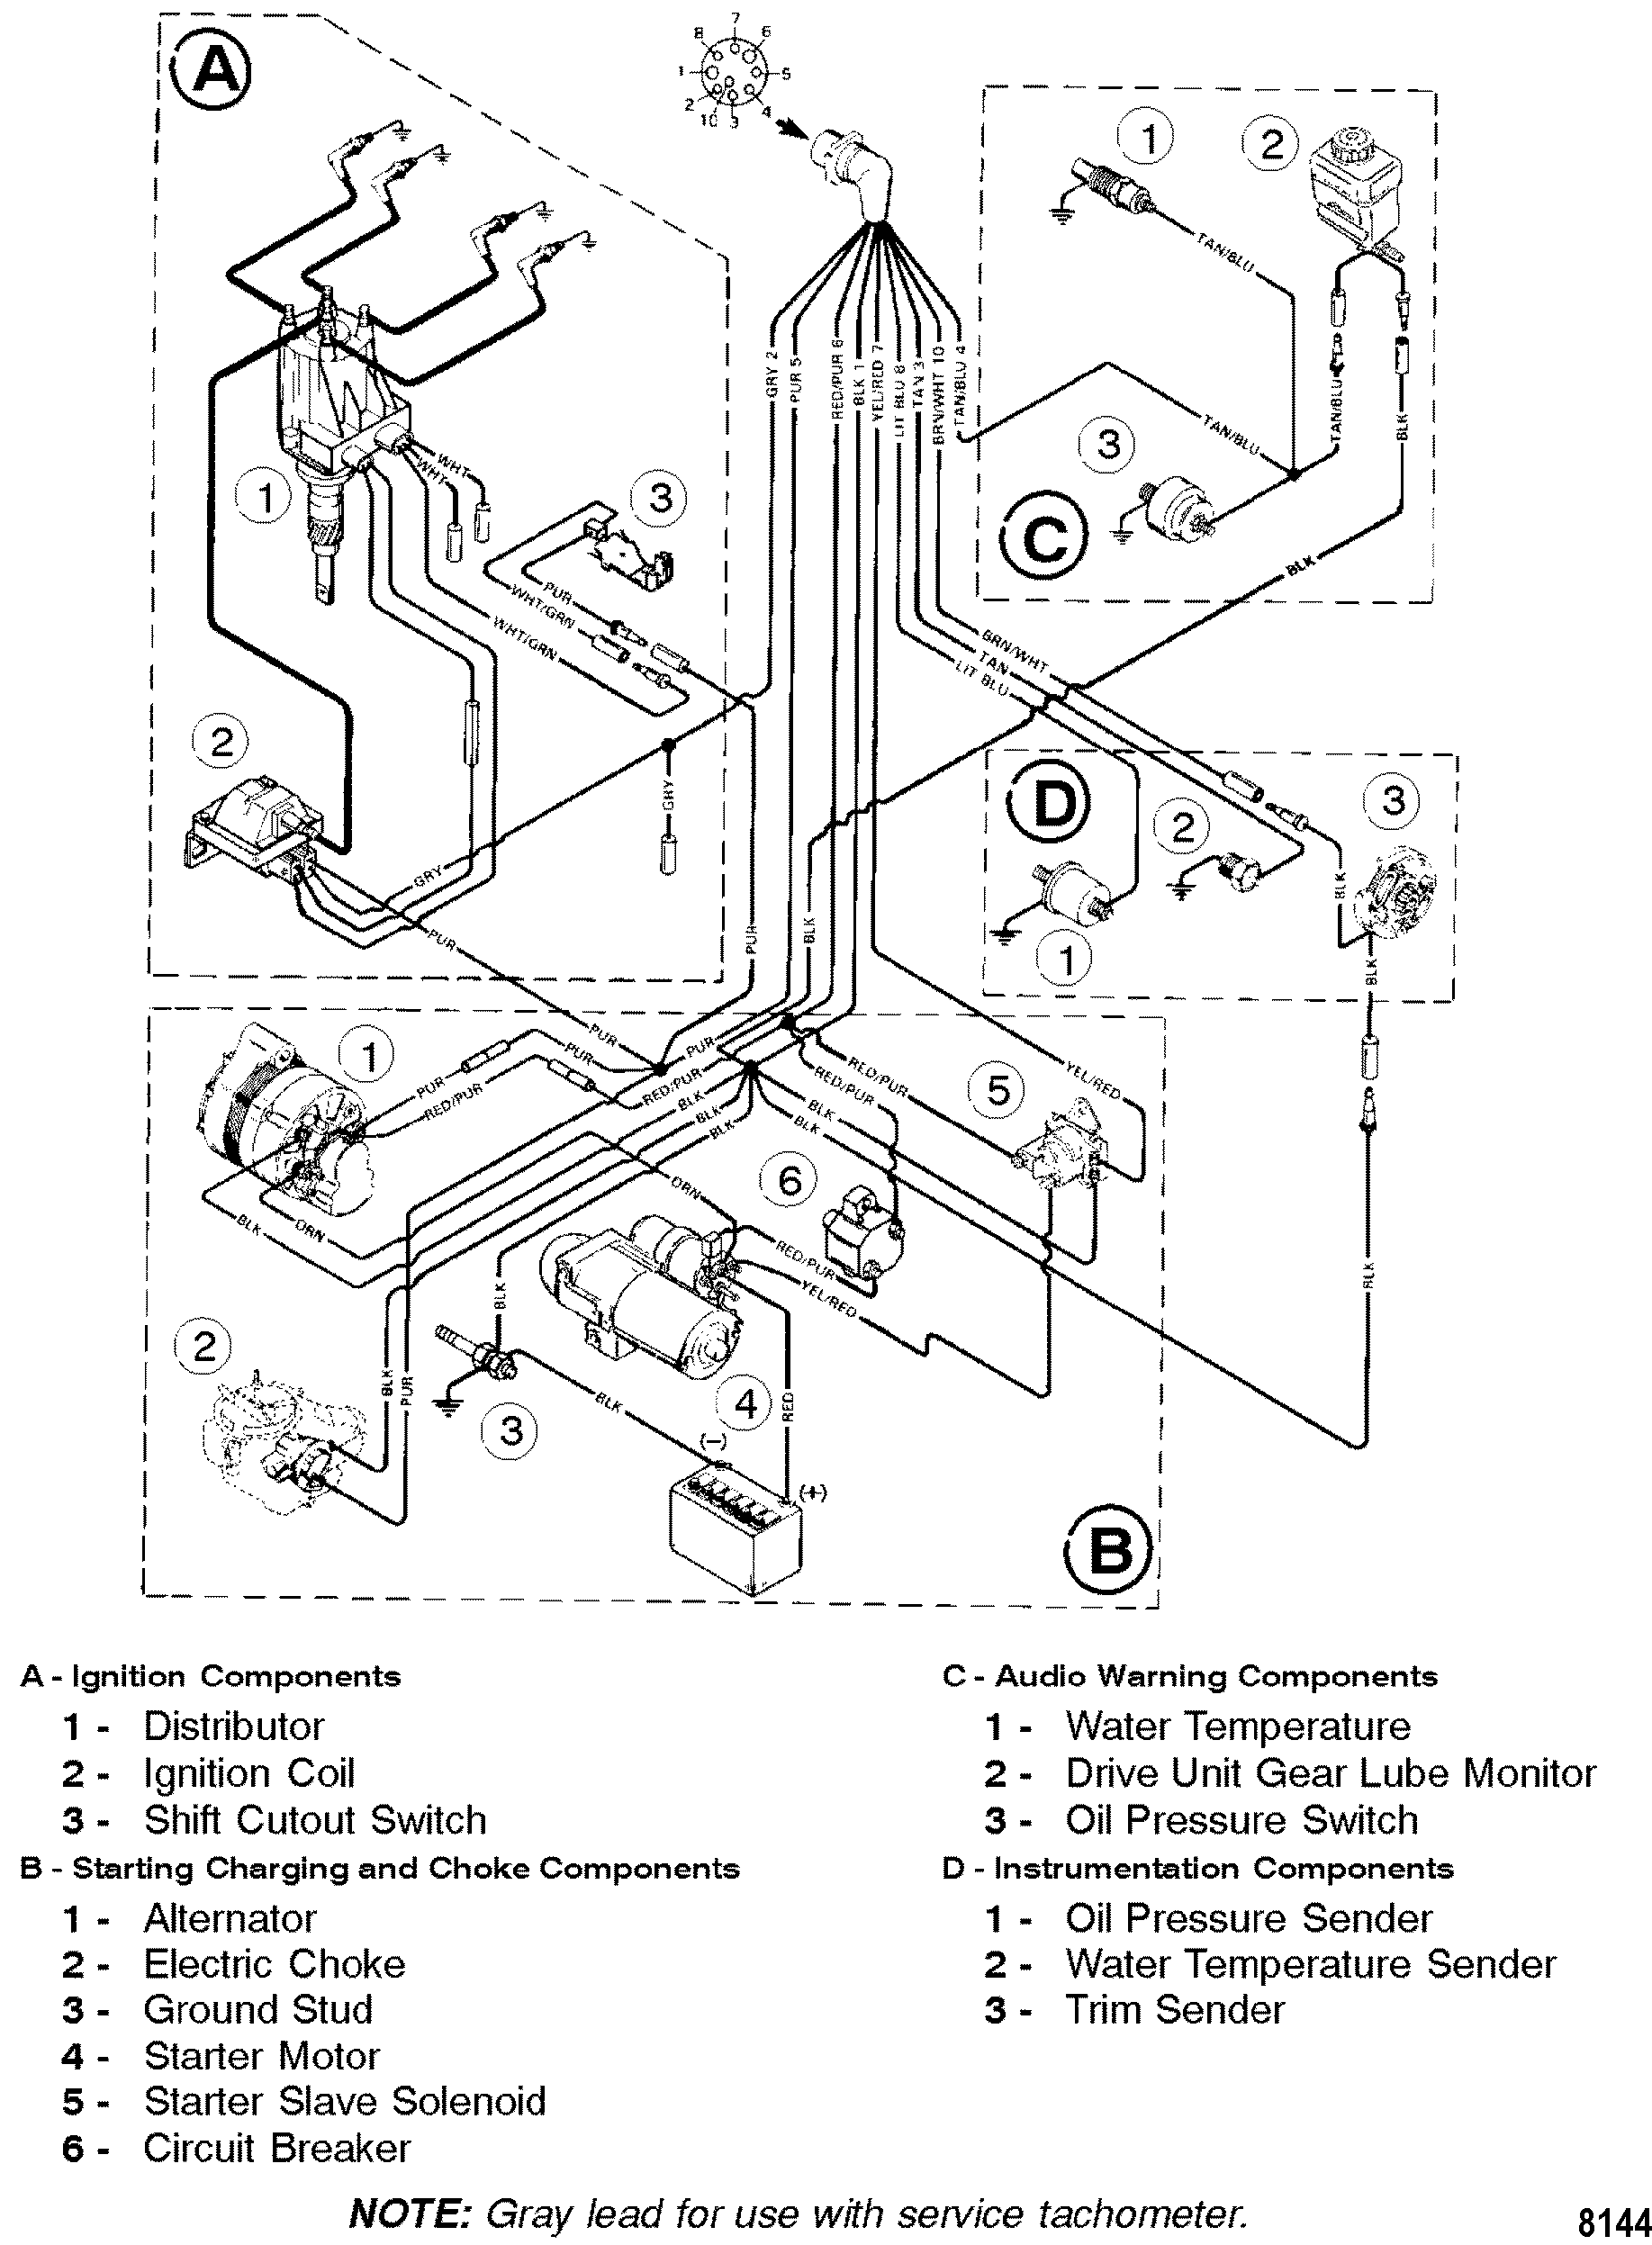 8144 wiring harness for mercruiser 3 0l alpha one mercruiser wiring harness diagram at bayanpartner.co